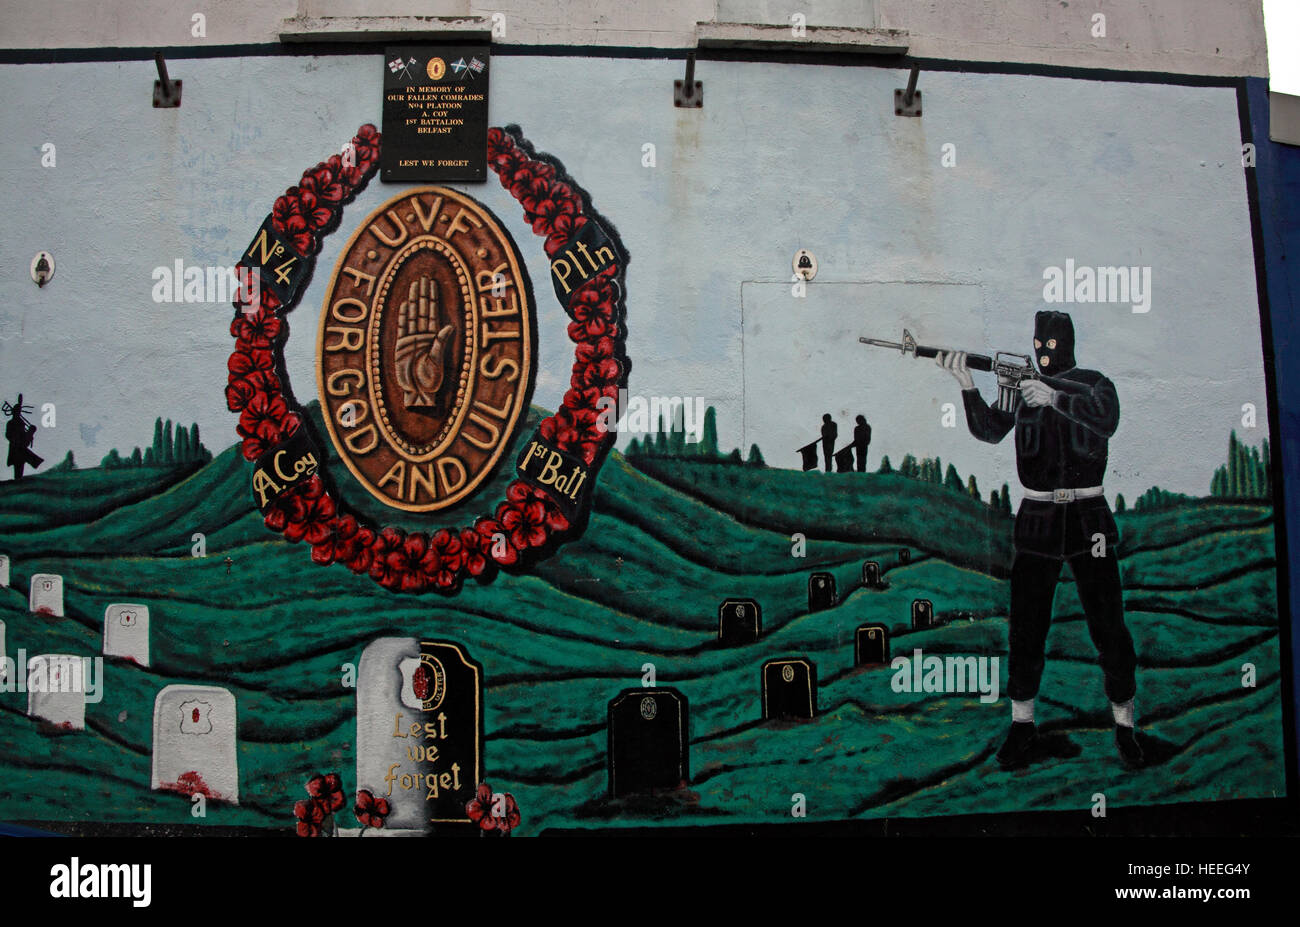 Mural,art,British,Union,wall,walls,gable end,gable,end,Northern,Irish,Republican,violence,para,military,paramilitary,fallen,Martyrs,martyr,street,rd,road,painting,painted,symbolism,Loyalist,culture,history,community,soldier,pointing,rifle,sniper,God,and,Ulster,in,graveyard,poppy,poppies,GoTonySmith,@HotpixUK,Tony,Smith,UK,GB,Great,Britain,United,Kingdom,Irish,British,Ireland,problem,with,problem with,issue with,NI,Northern,Northern Ireland,Belfast,City,Centre,Art,Artists,the,troubles,The Troubles,Good Friday Agreement,Peace,honour,painting,wall,walls,tribute,republicanism,Fight,Justice,West,Beal,feirste,martyrs,social,tour,tourism,tourists,urban,six,counties,6,backdrop,county,Antrim,For God and Ulster,For God & Ulster,Belfast streets,Buy Pictures of,Buy Images Of,Images of,Stock Images,Tony Smith,United Kingdom,Great Britain,British Isles